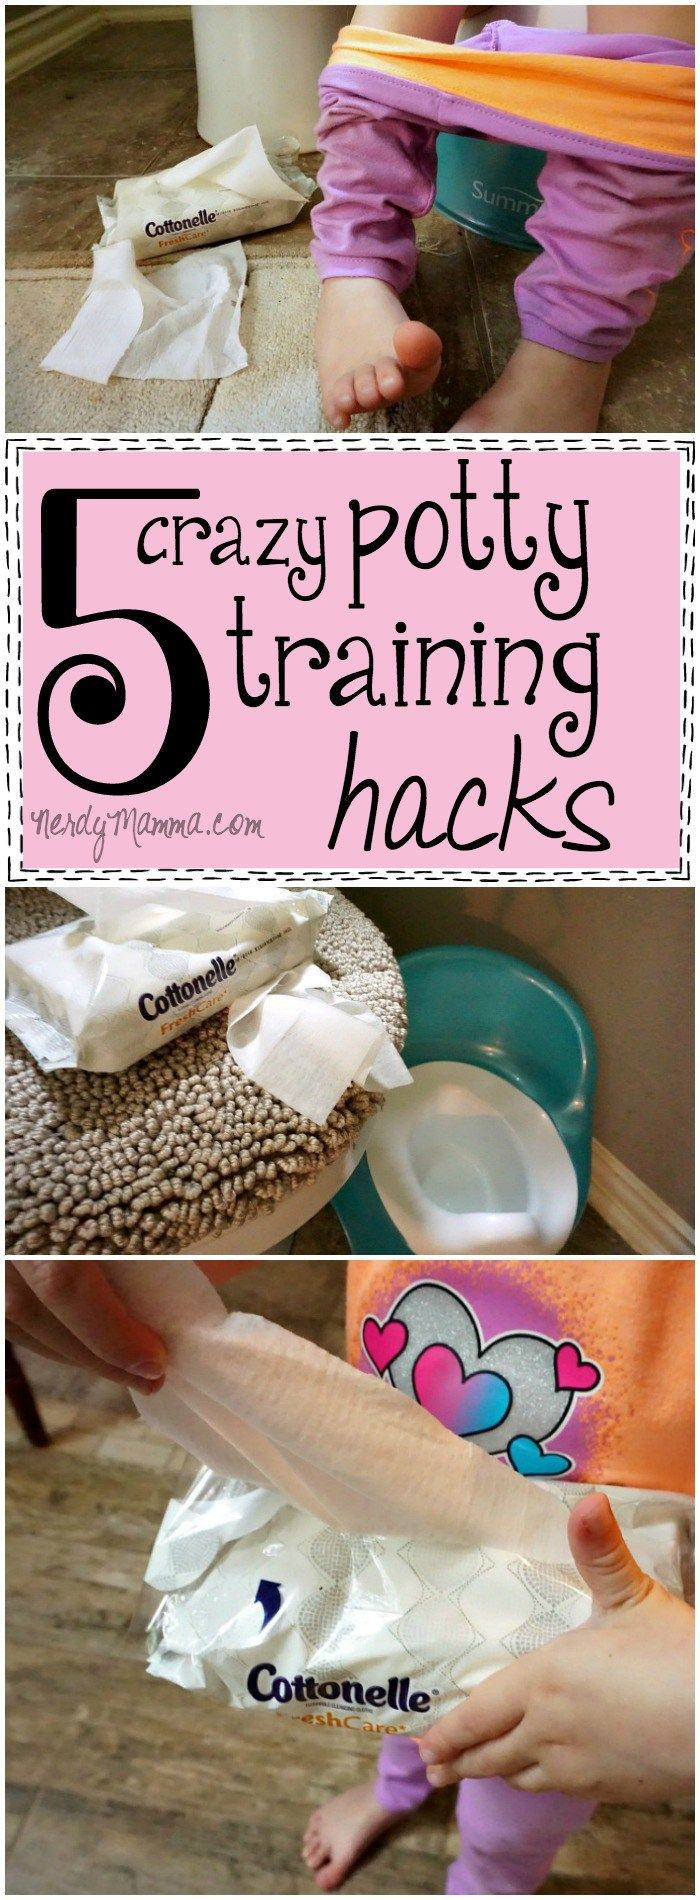 These Potty Training Hacks are just so clever! I love what she does with the kid's backpack. LOL! AD #ConfidentClean